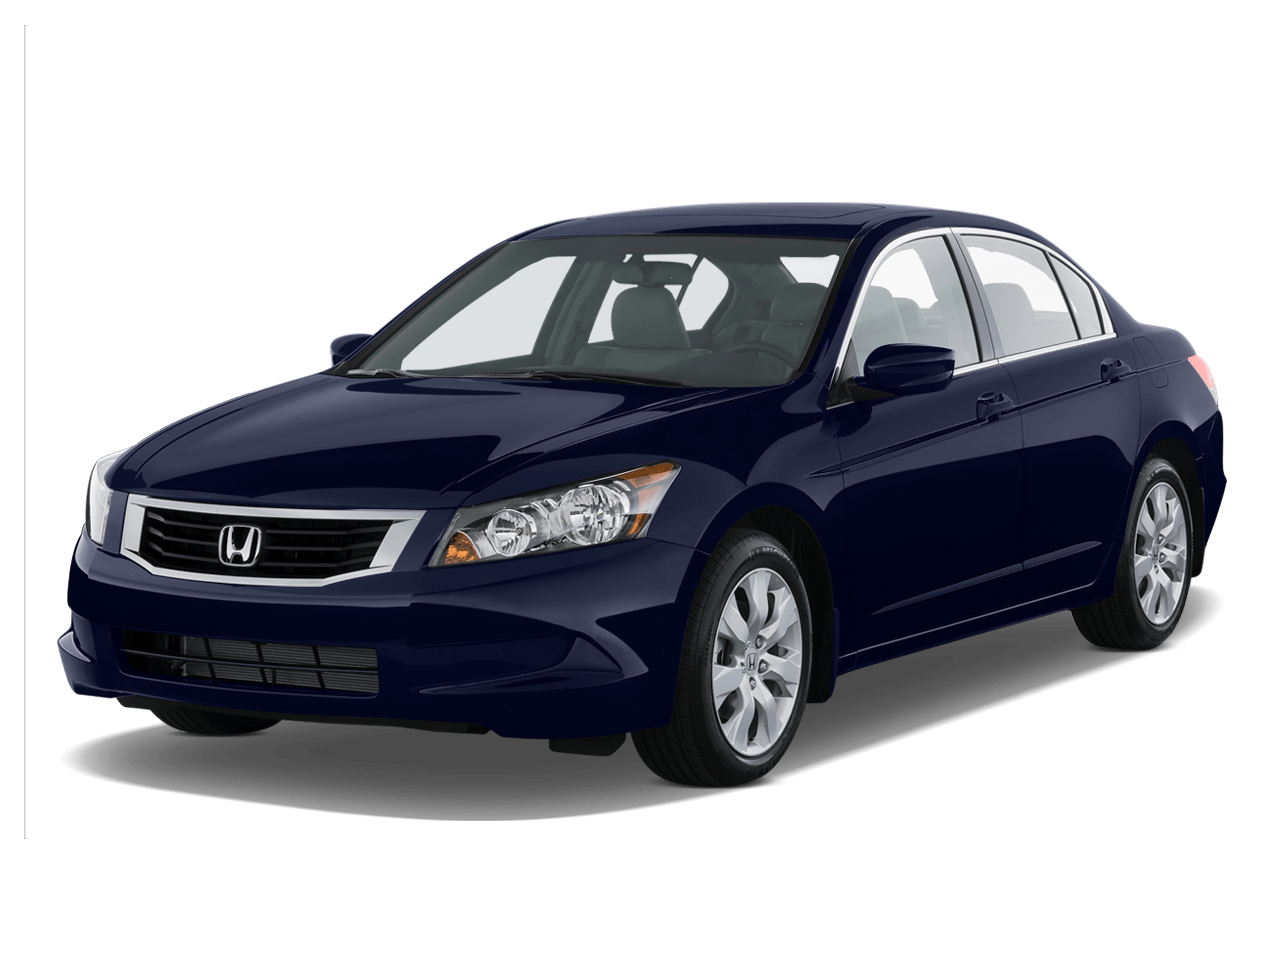 medium resolution of 2008 honda accord reviews research accord prices u0026 specs motortrend 2008 honda accord rims 2008